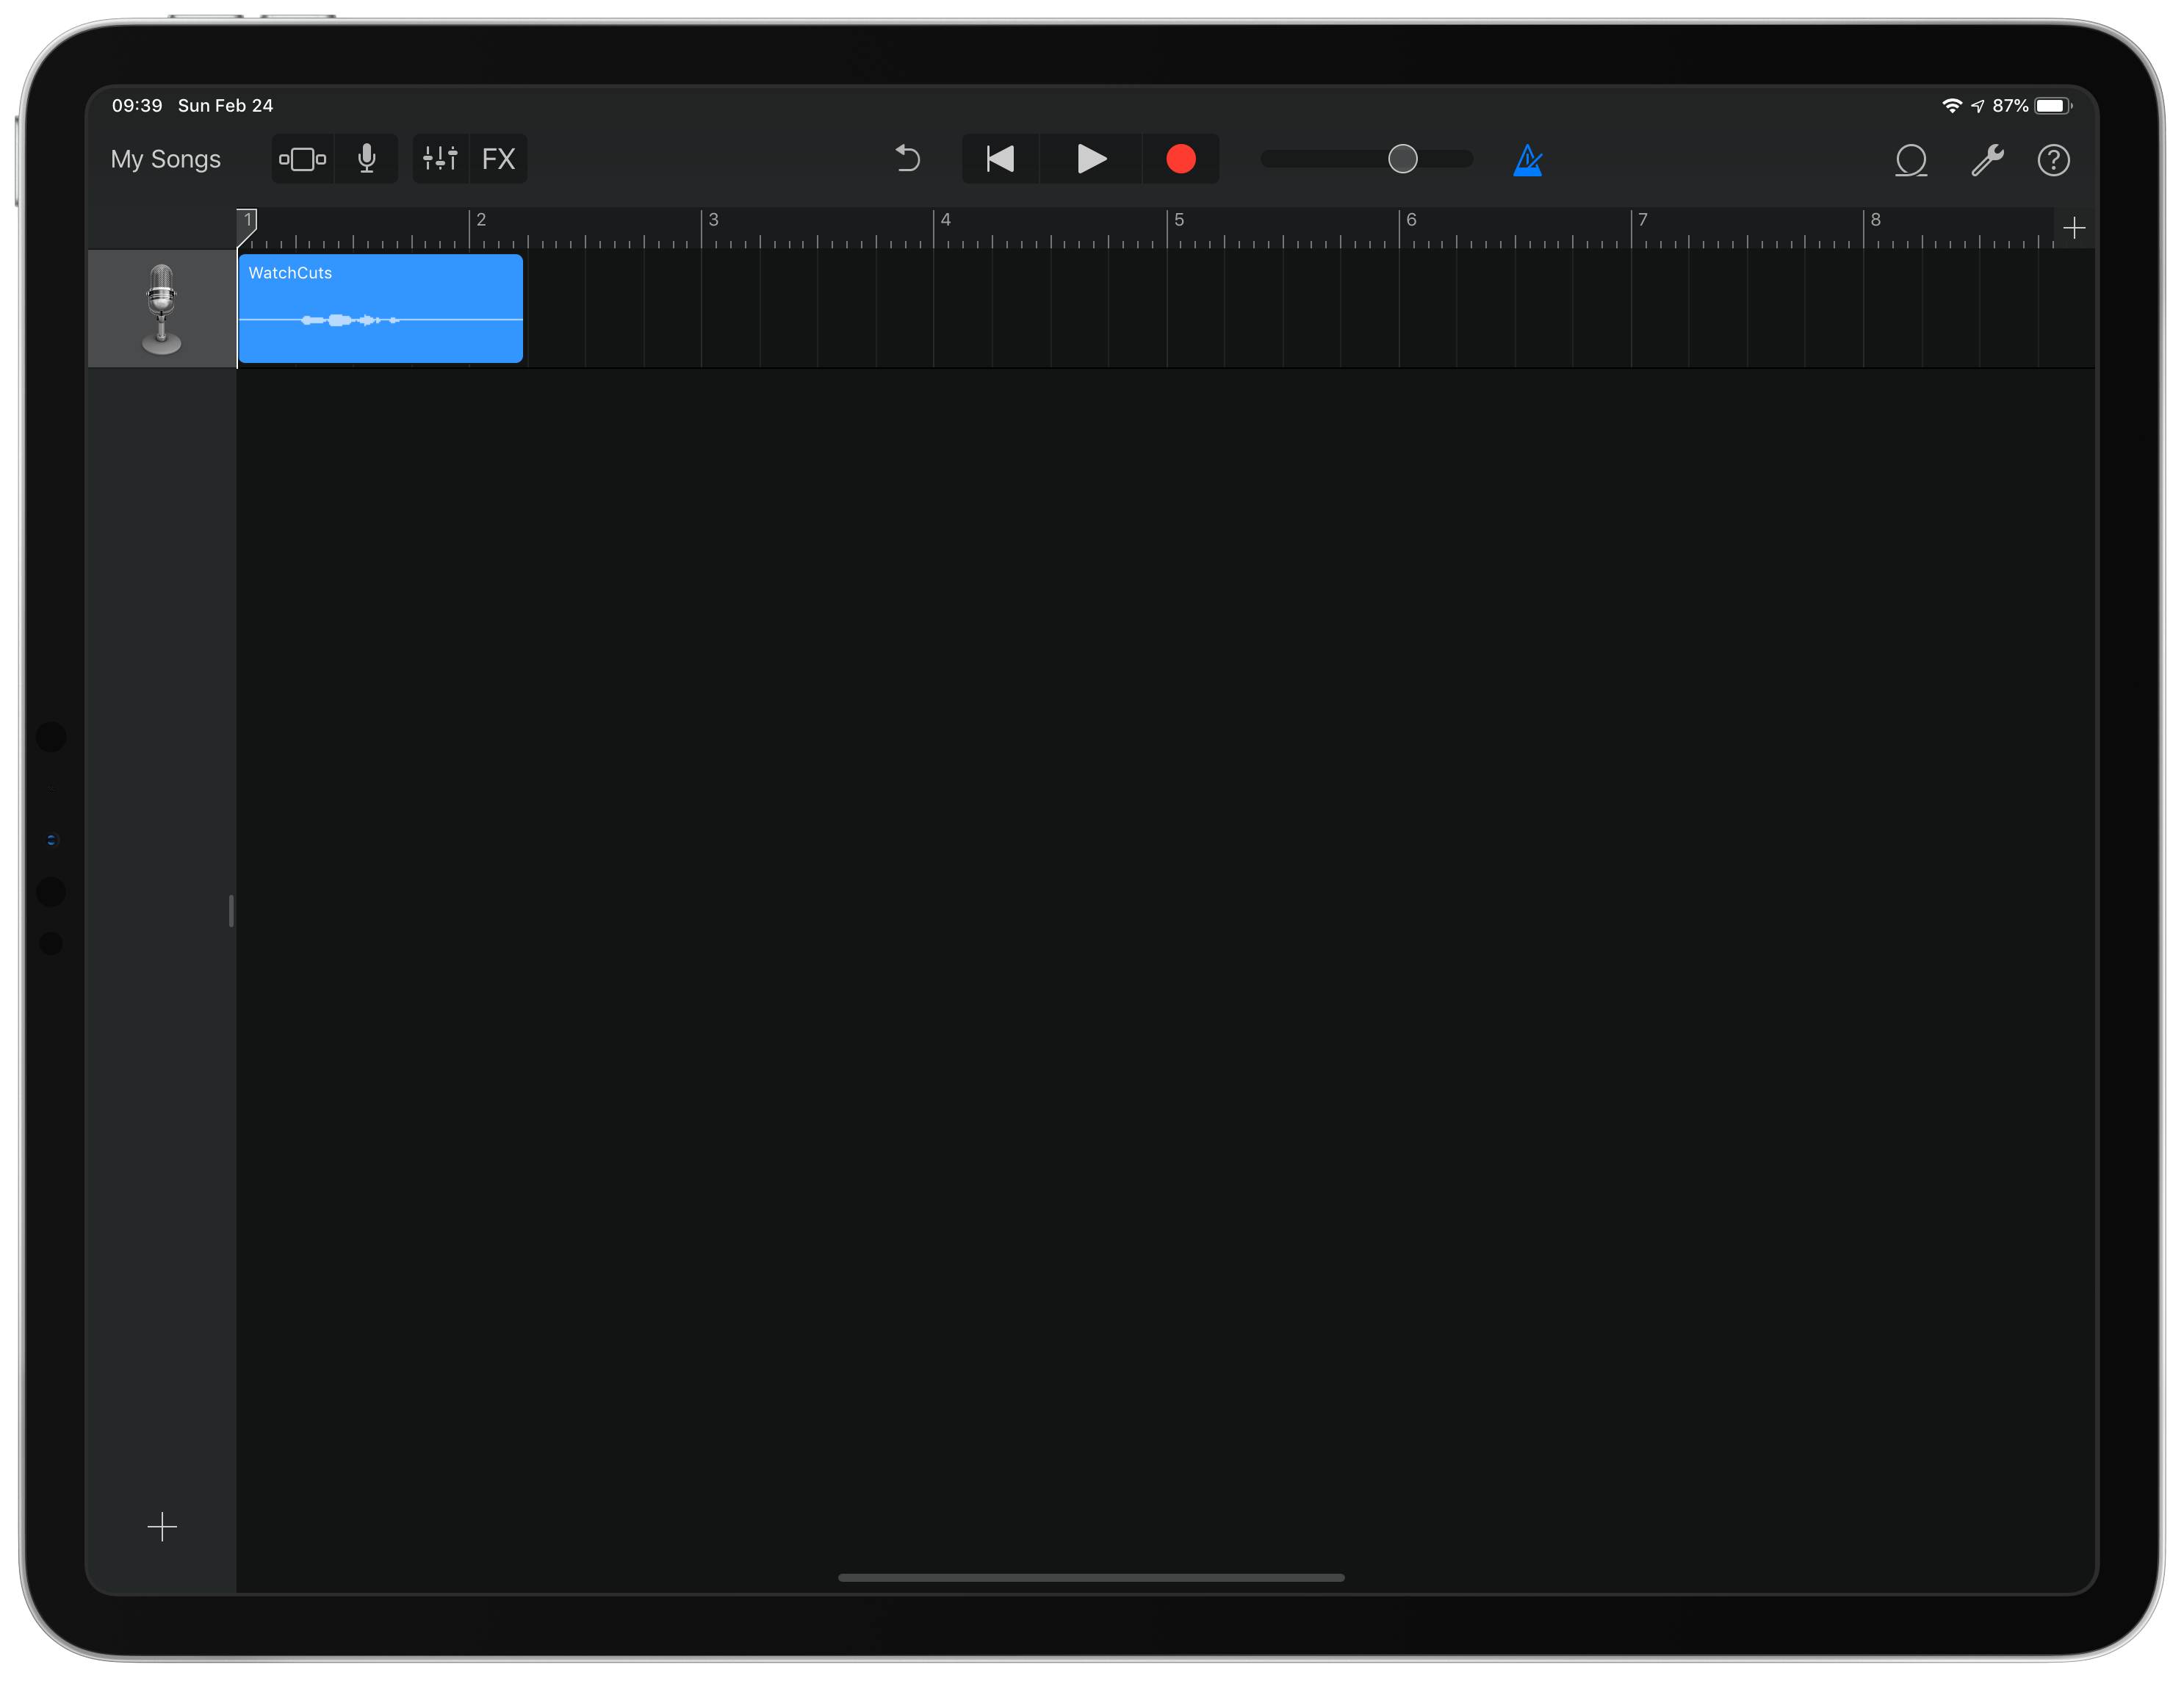 GarageBand File in Track View